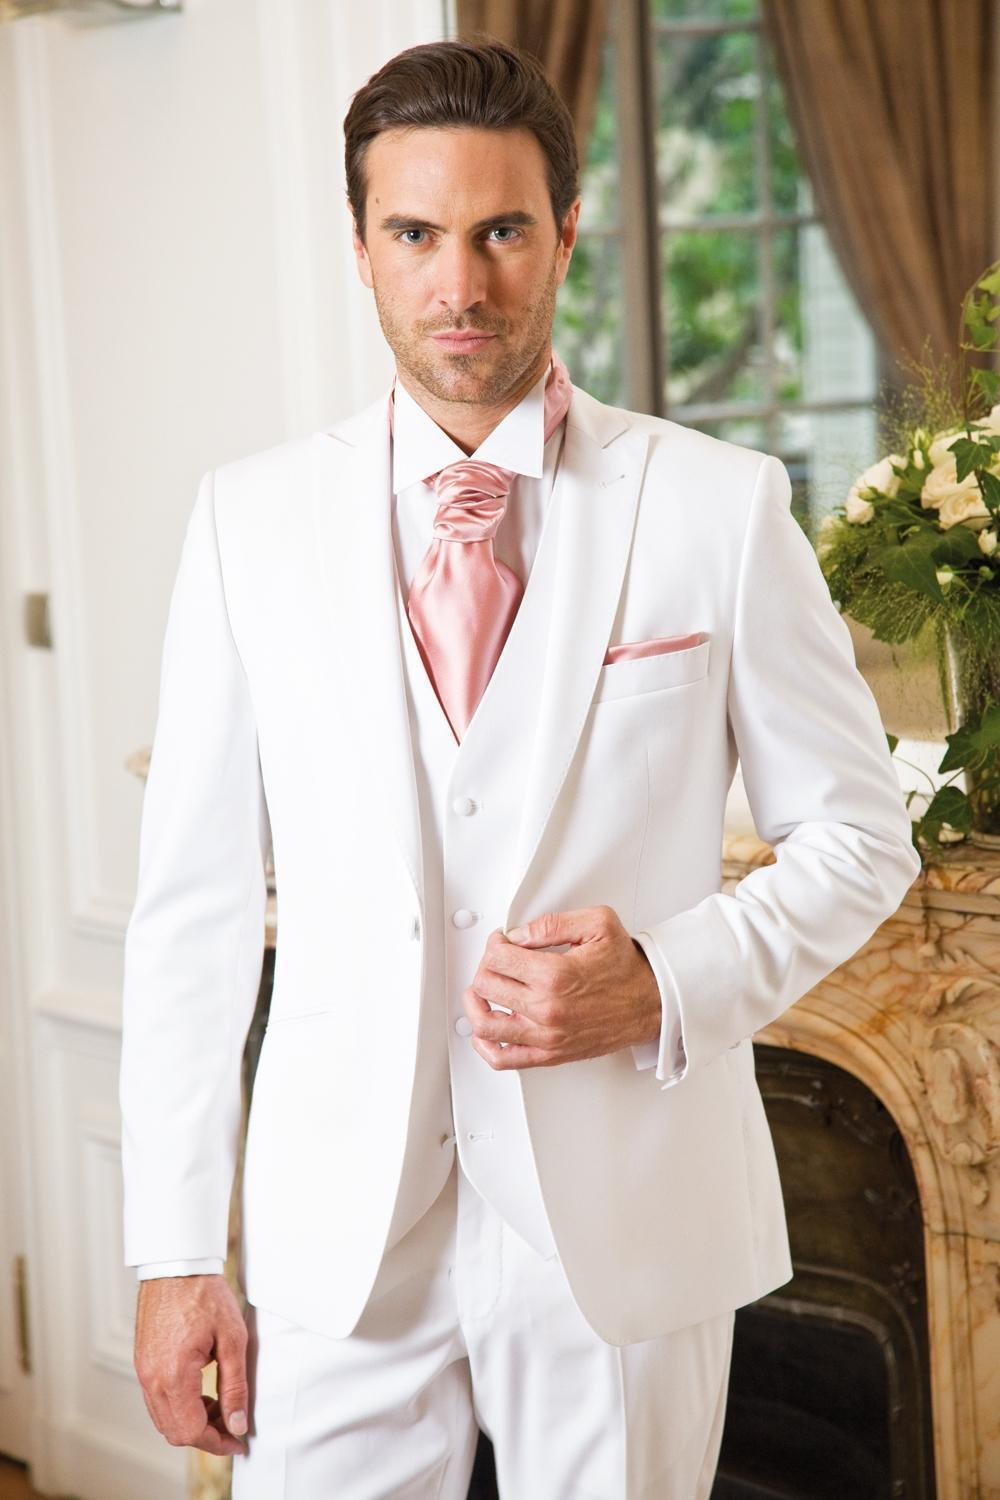 Ivory Wedding Suits For Men - Tbrb.info